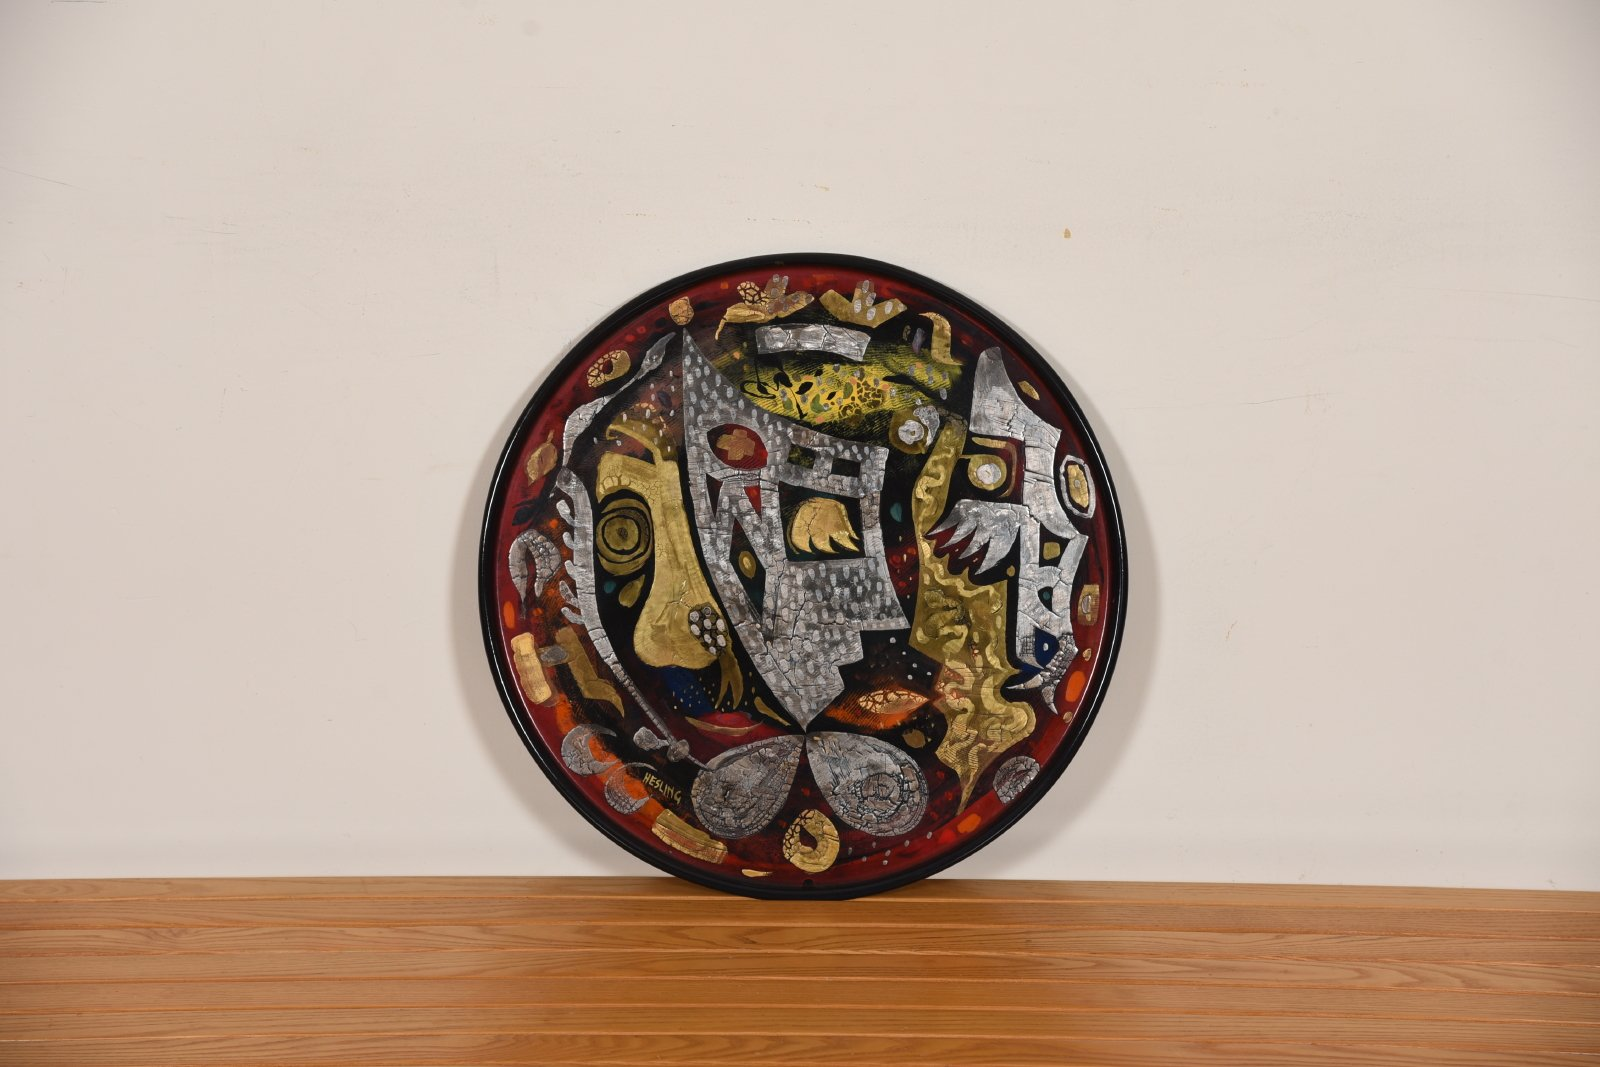 Large Enamel Platter with Maori-style Design by Bernard Hesling